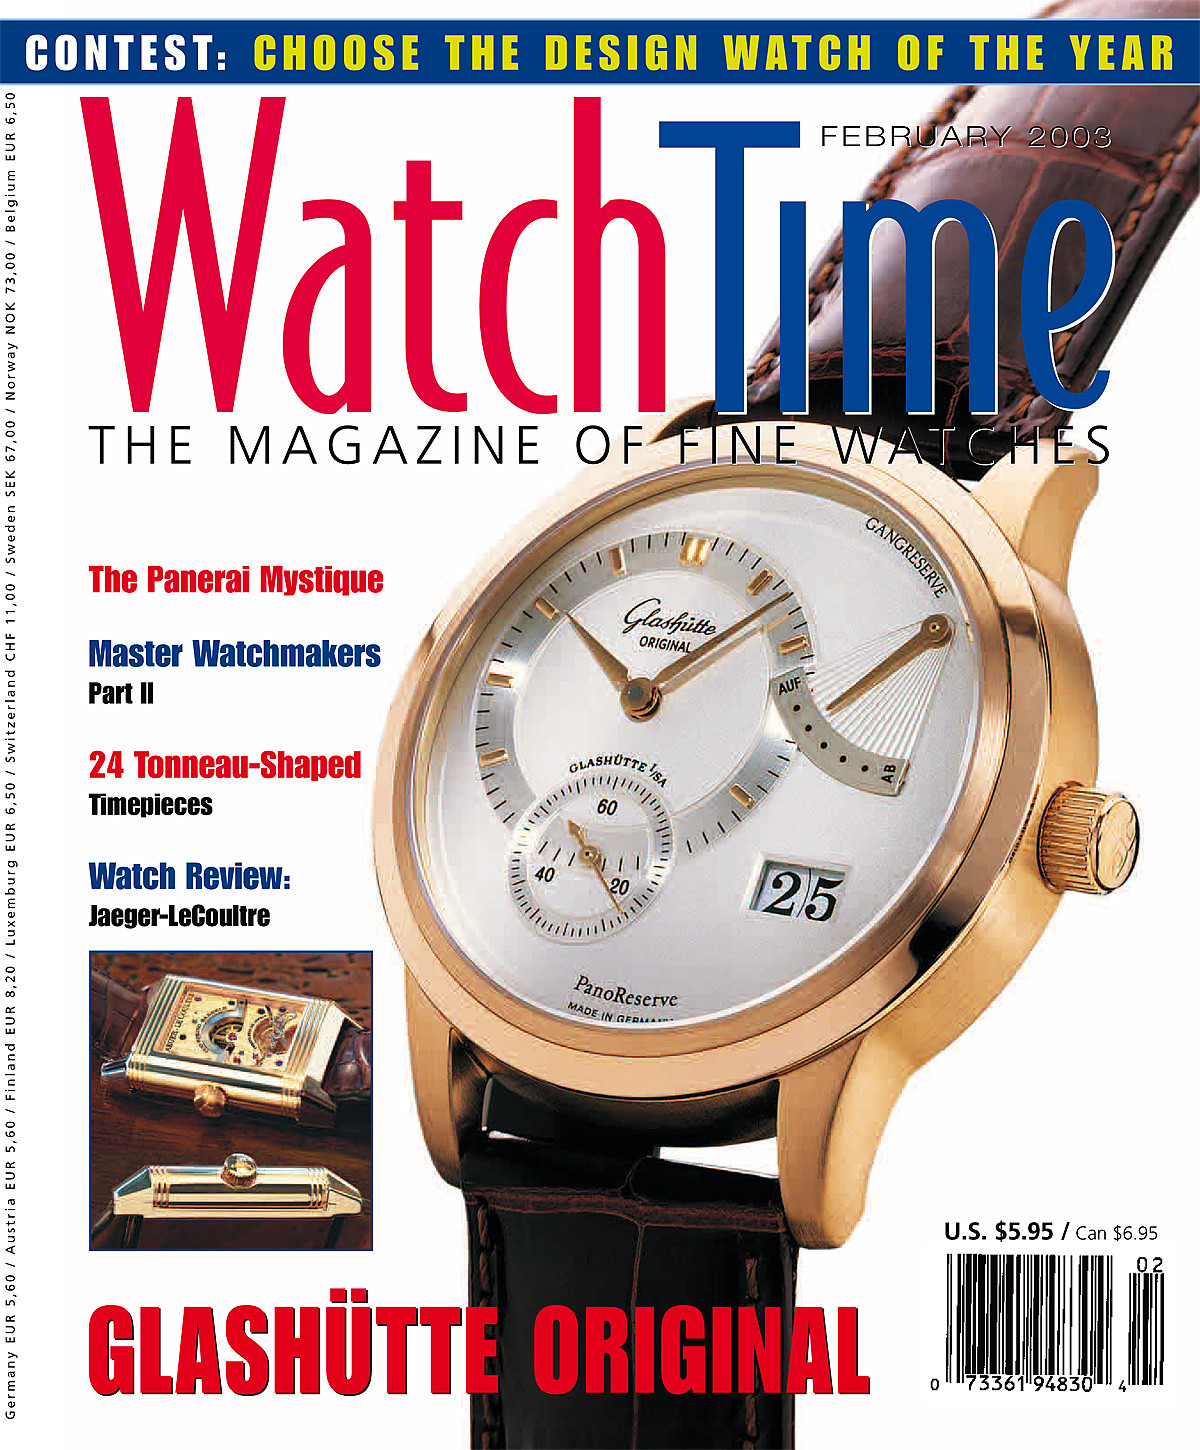 WatchTime February 2003